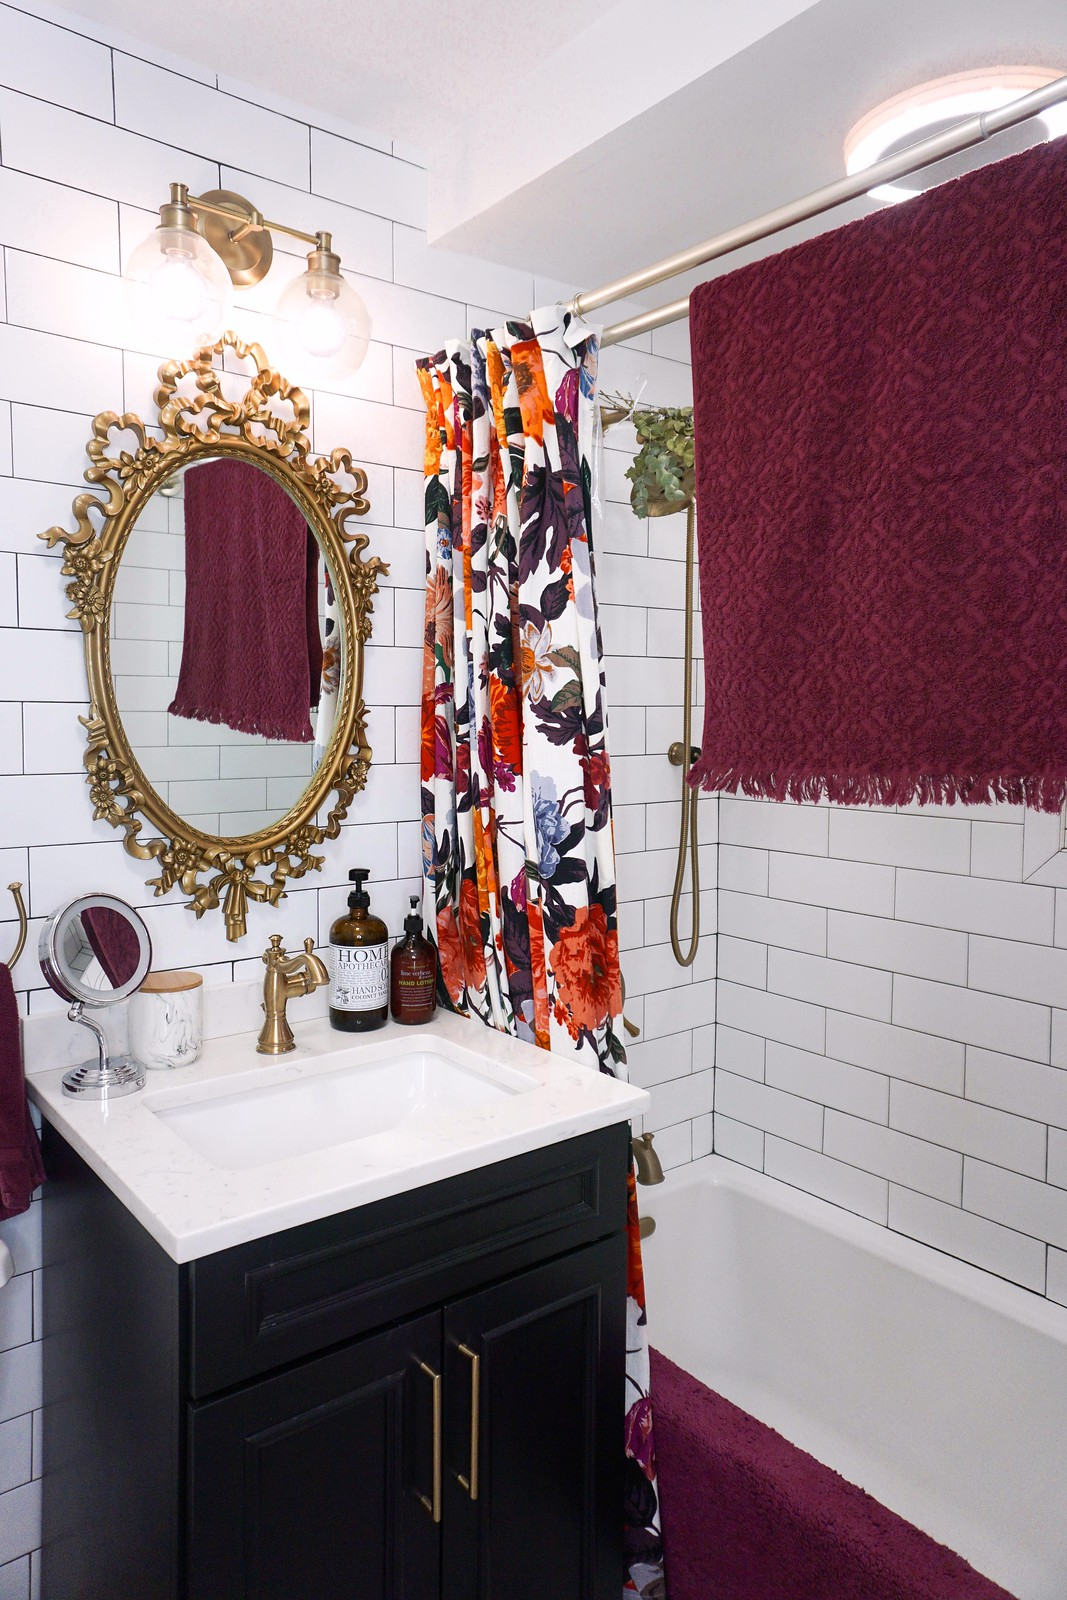 Eclectic Boho Colorful Small Bathroom | Gold Antique Mirror and Fixtures | Black Bathroom Vanity